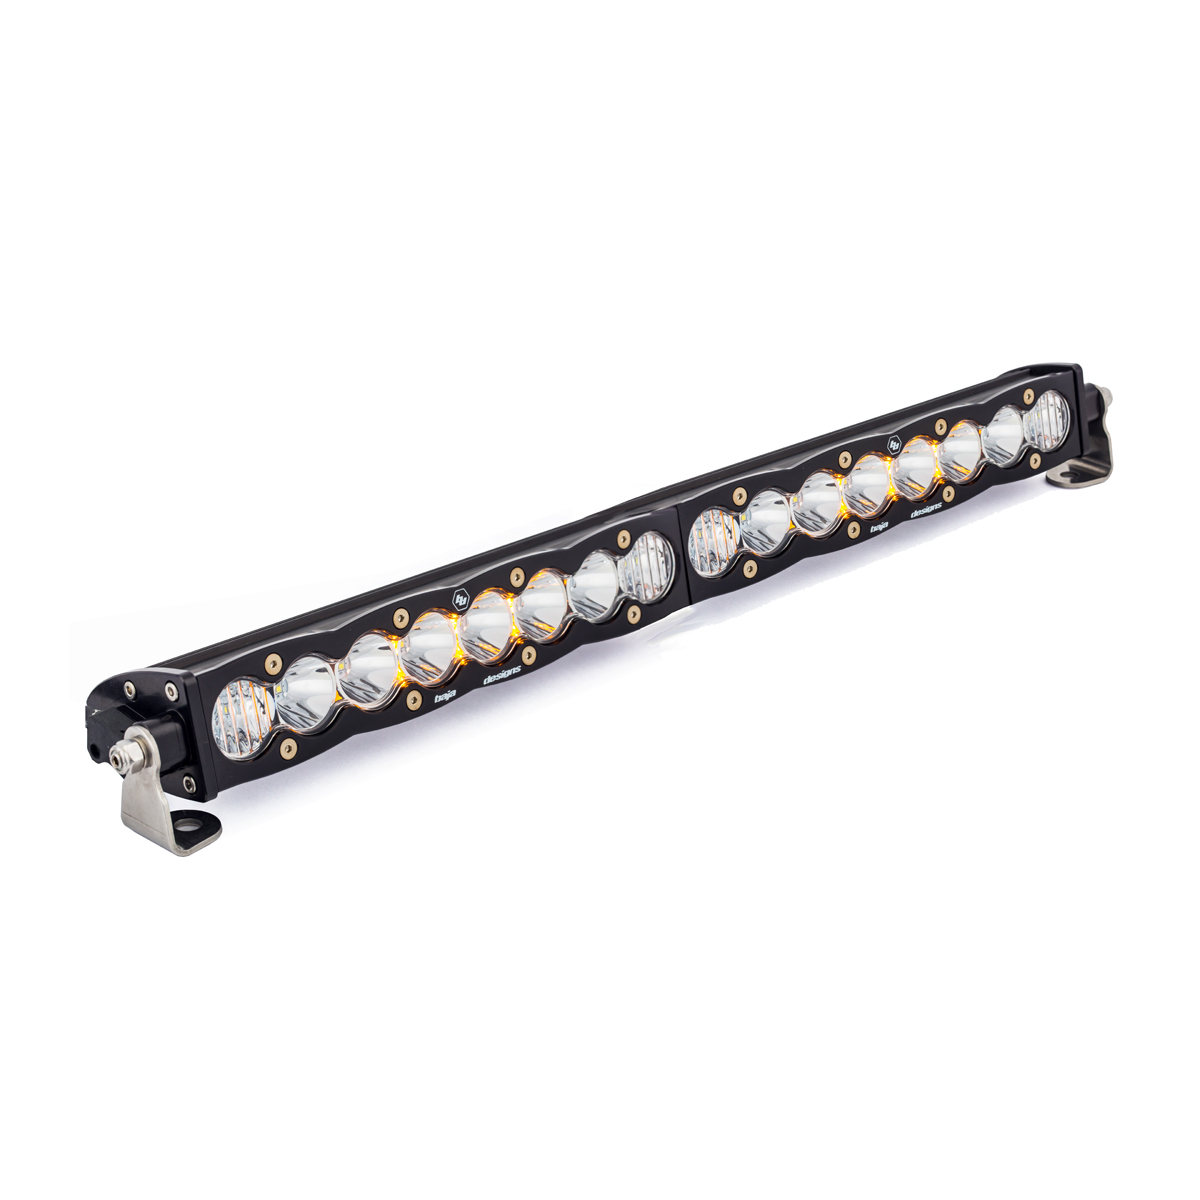 702003 Baja Designs 20 Inch LED Light Bar Single Straight Driving Combo Pattern S8 Series Each Black